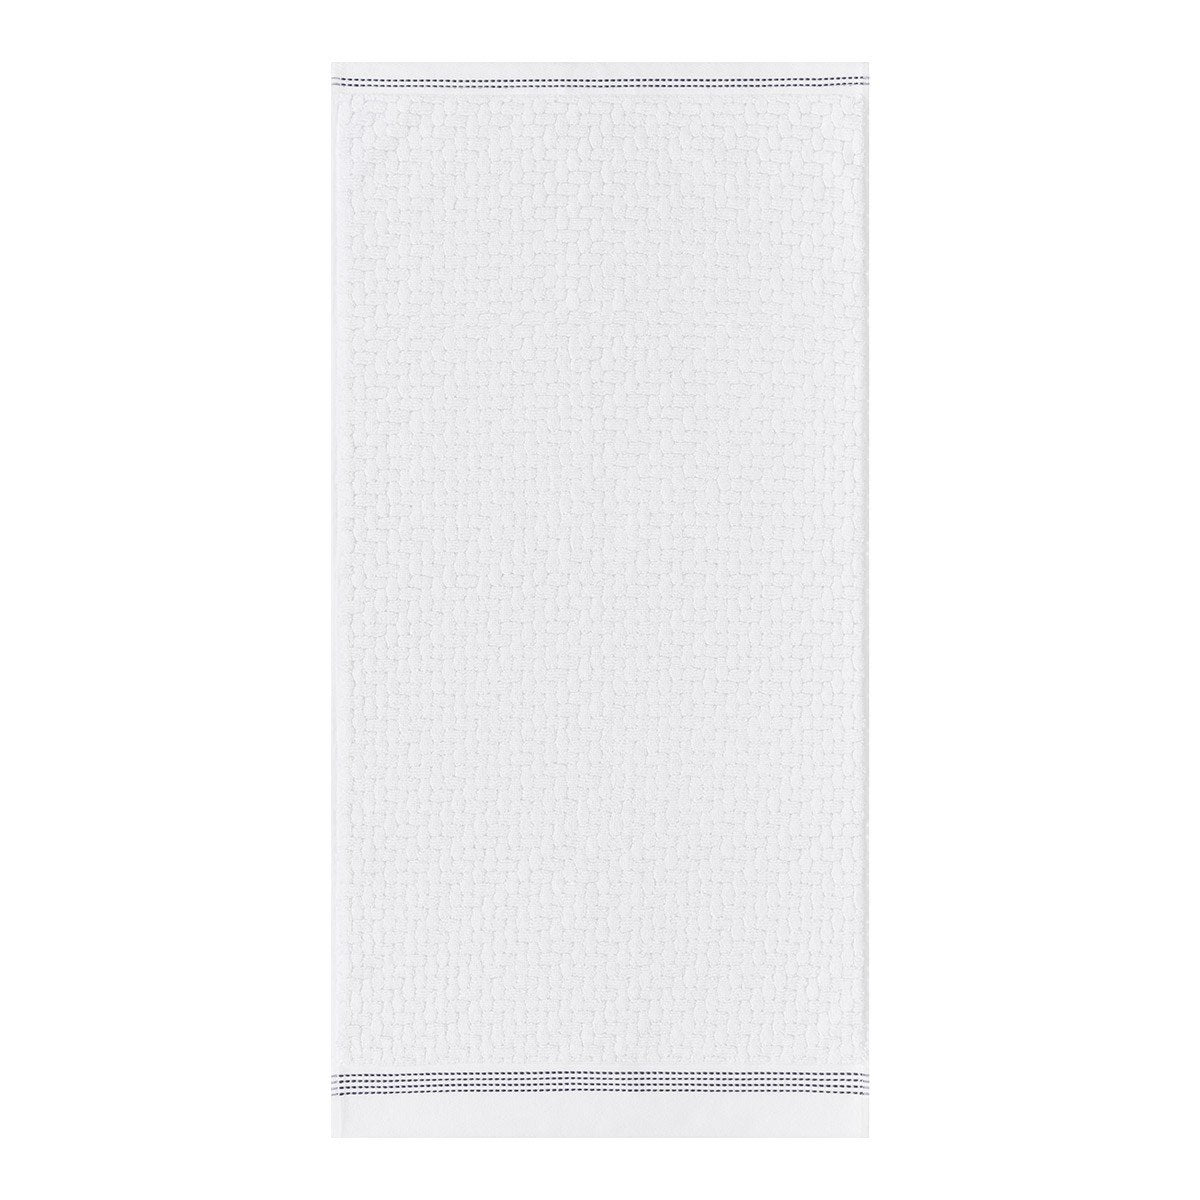 Le Jacquard Français | Couture White Bath Collection | Fig Linens - Towel